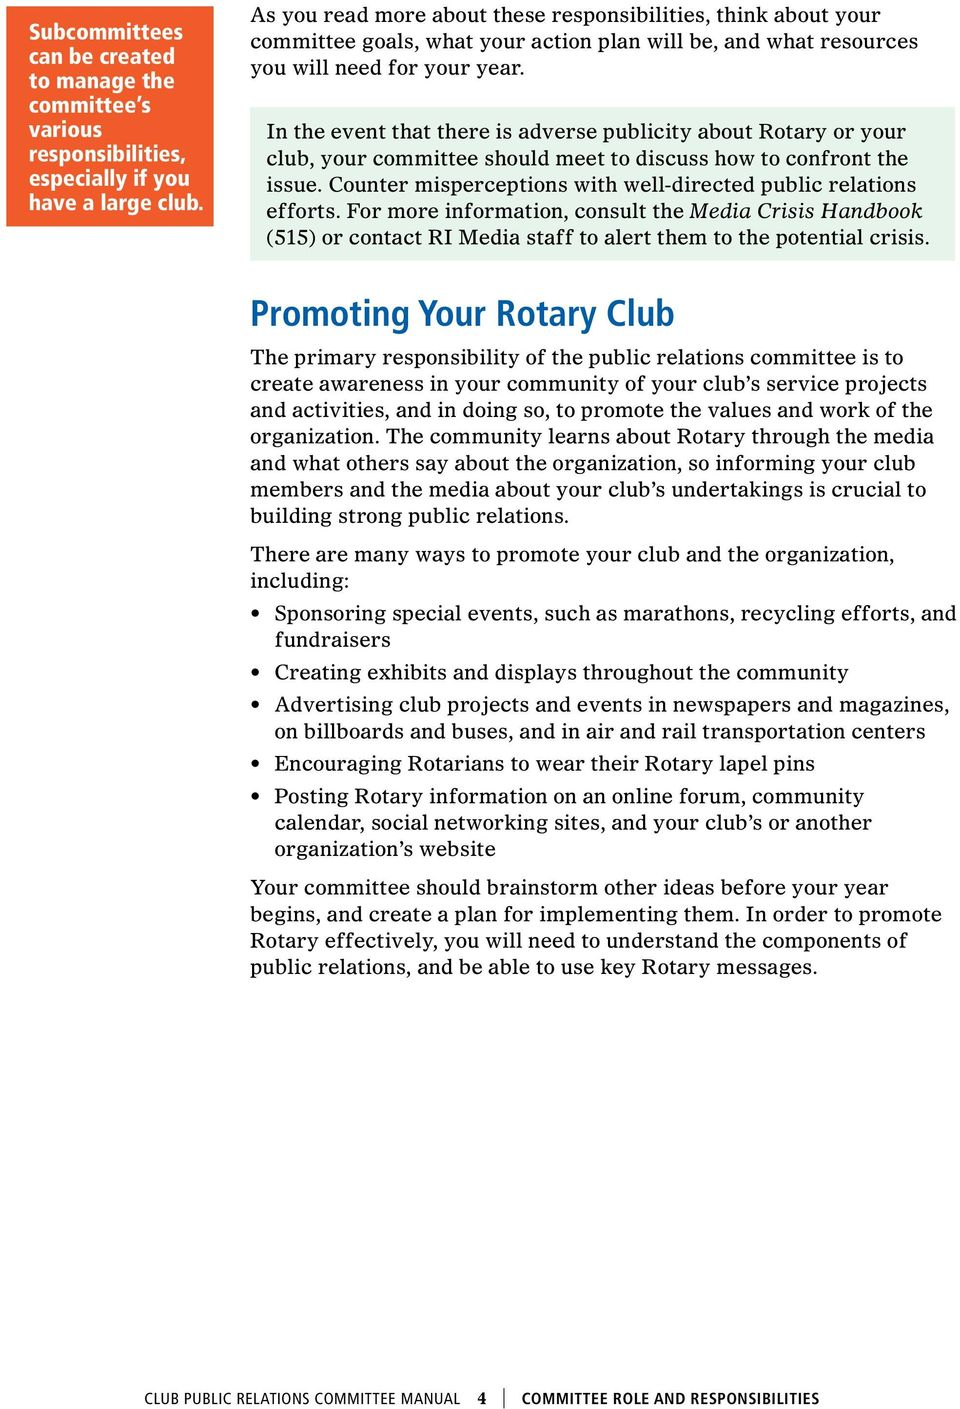 In the event that there is adverse publicity about Rotary or your club, your committee should meet to discuss how to confront the issue.